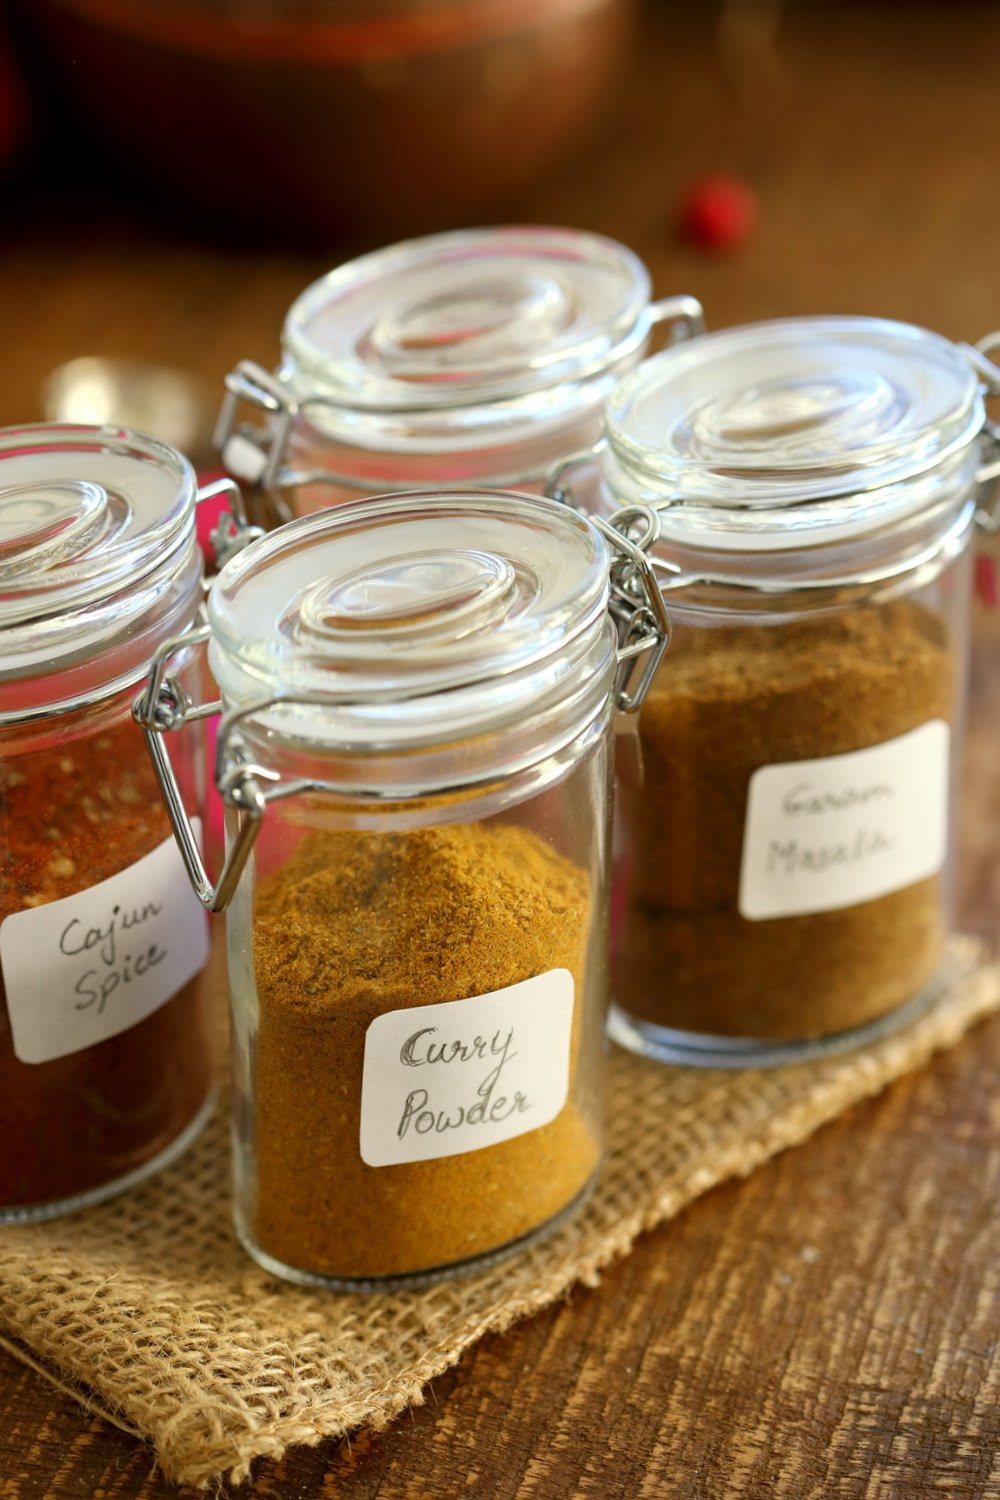 Easy Homemade Curry Powder Recipe! Adjust the ingredients to make your favorite curry spice. Use the seasoning in curries, roasted veggies, bowls, add to beans, hummus. Vegan Recipe #VeganRicha